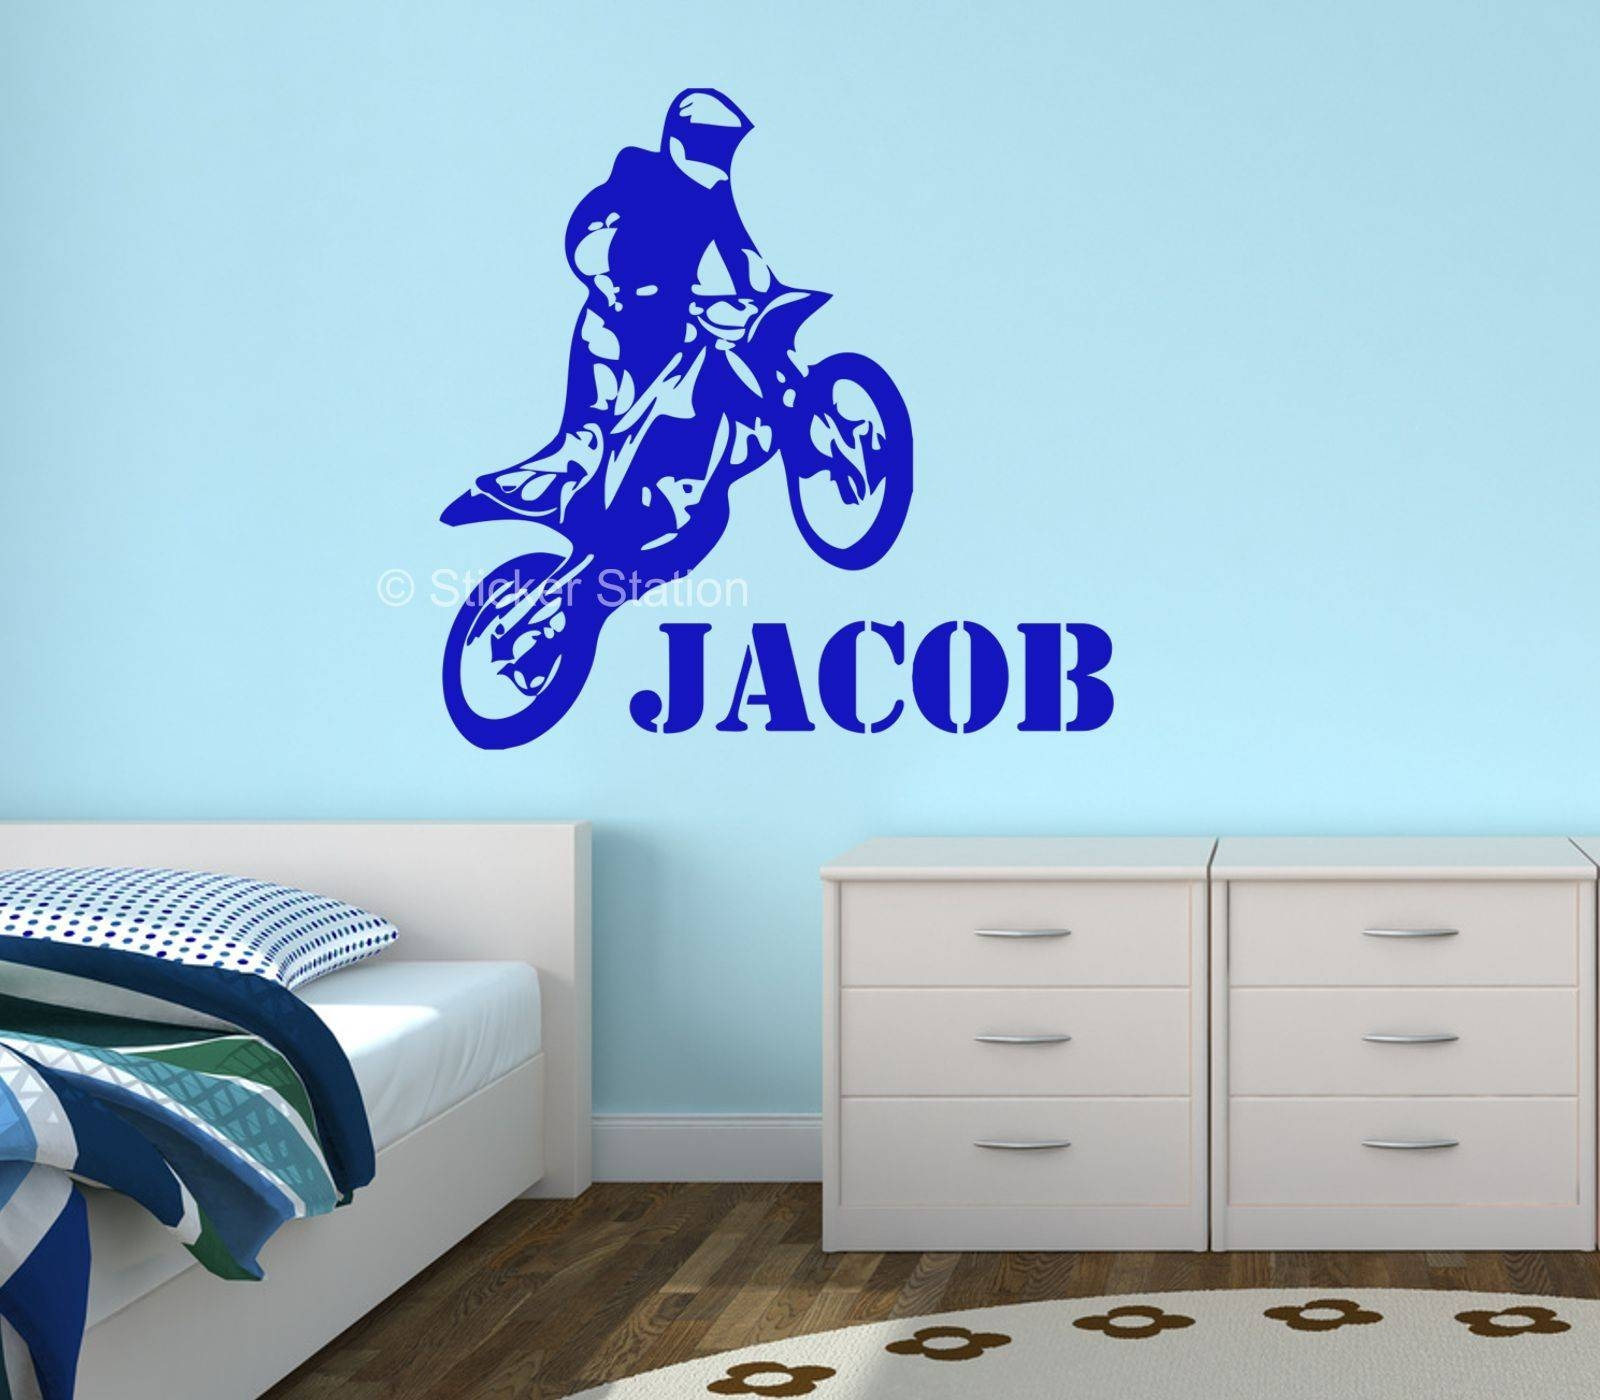 Motocross Motorbike Personalised Wall Art Sticker – Sticker Station Within Recent Graffiti Wall Art Stickers (View 15 of 30)